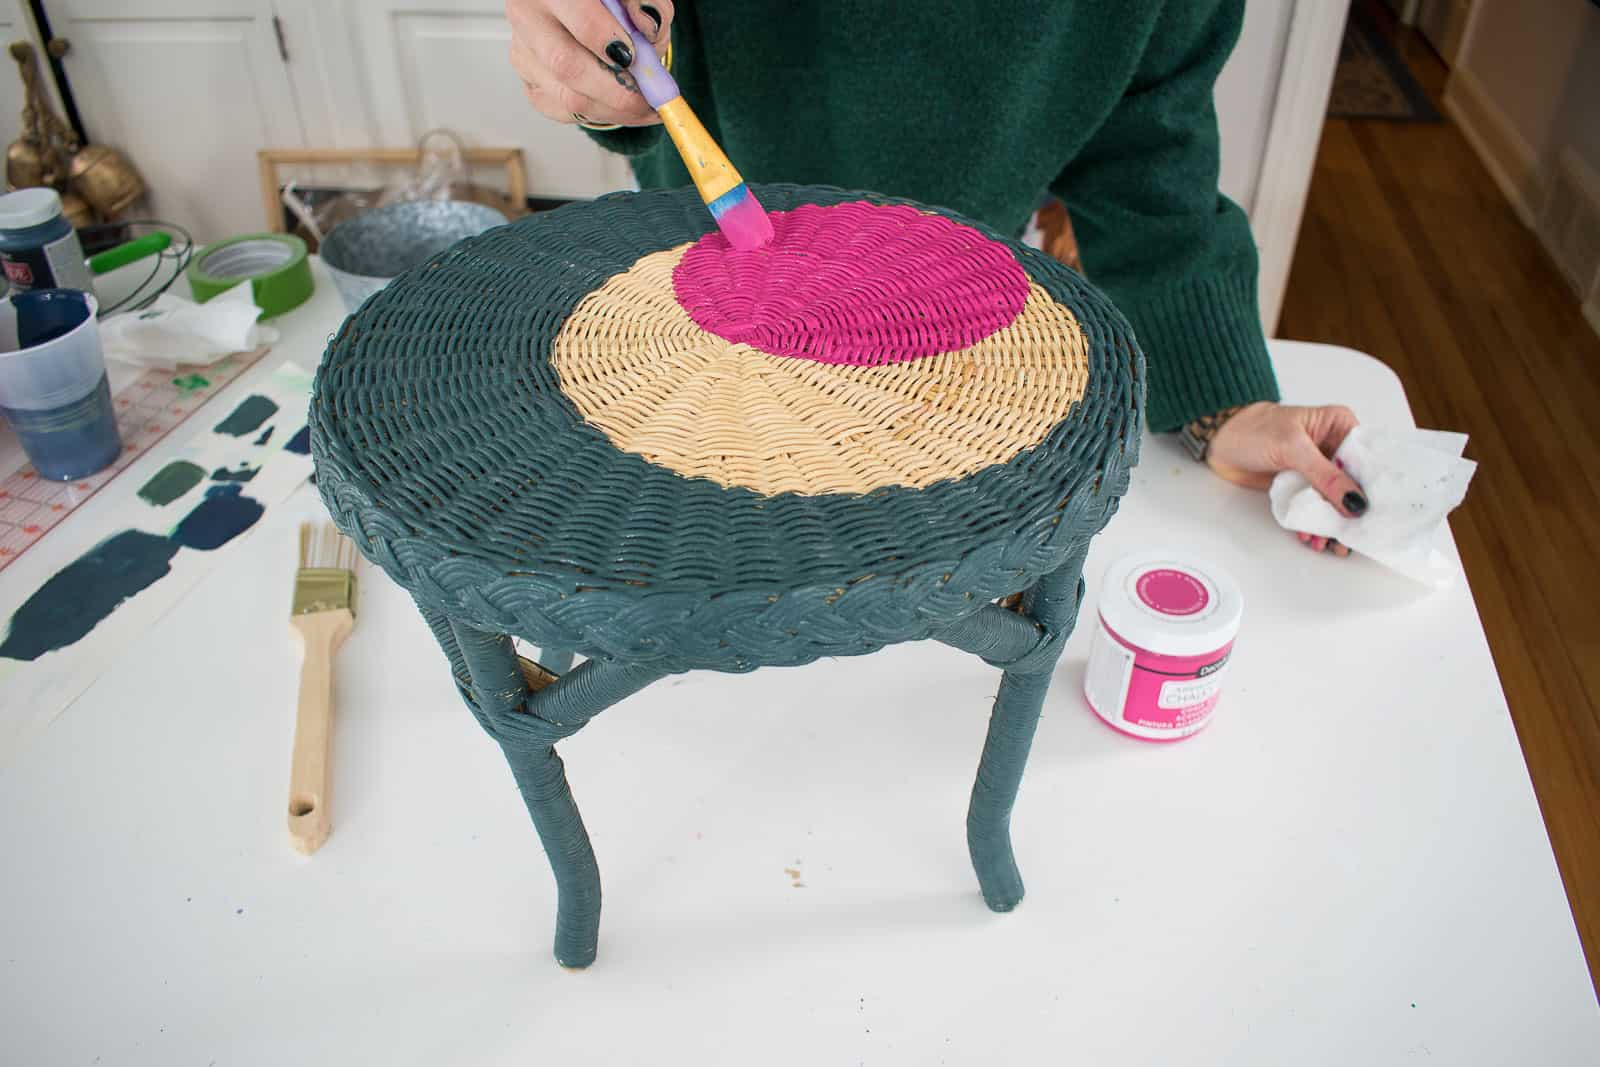 Adding a pink circle to the plant stand